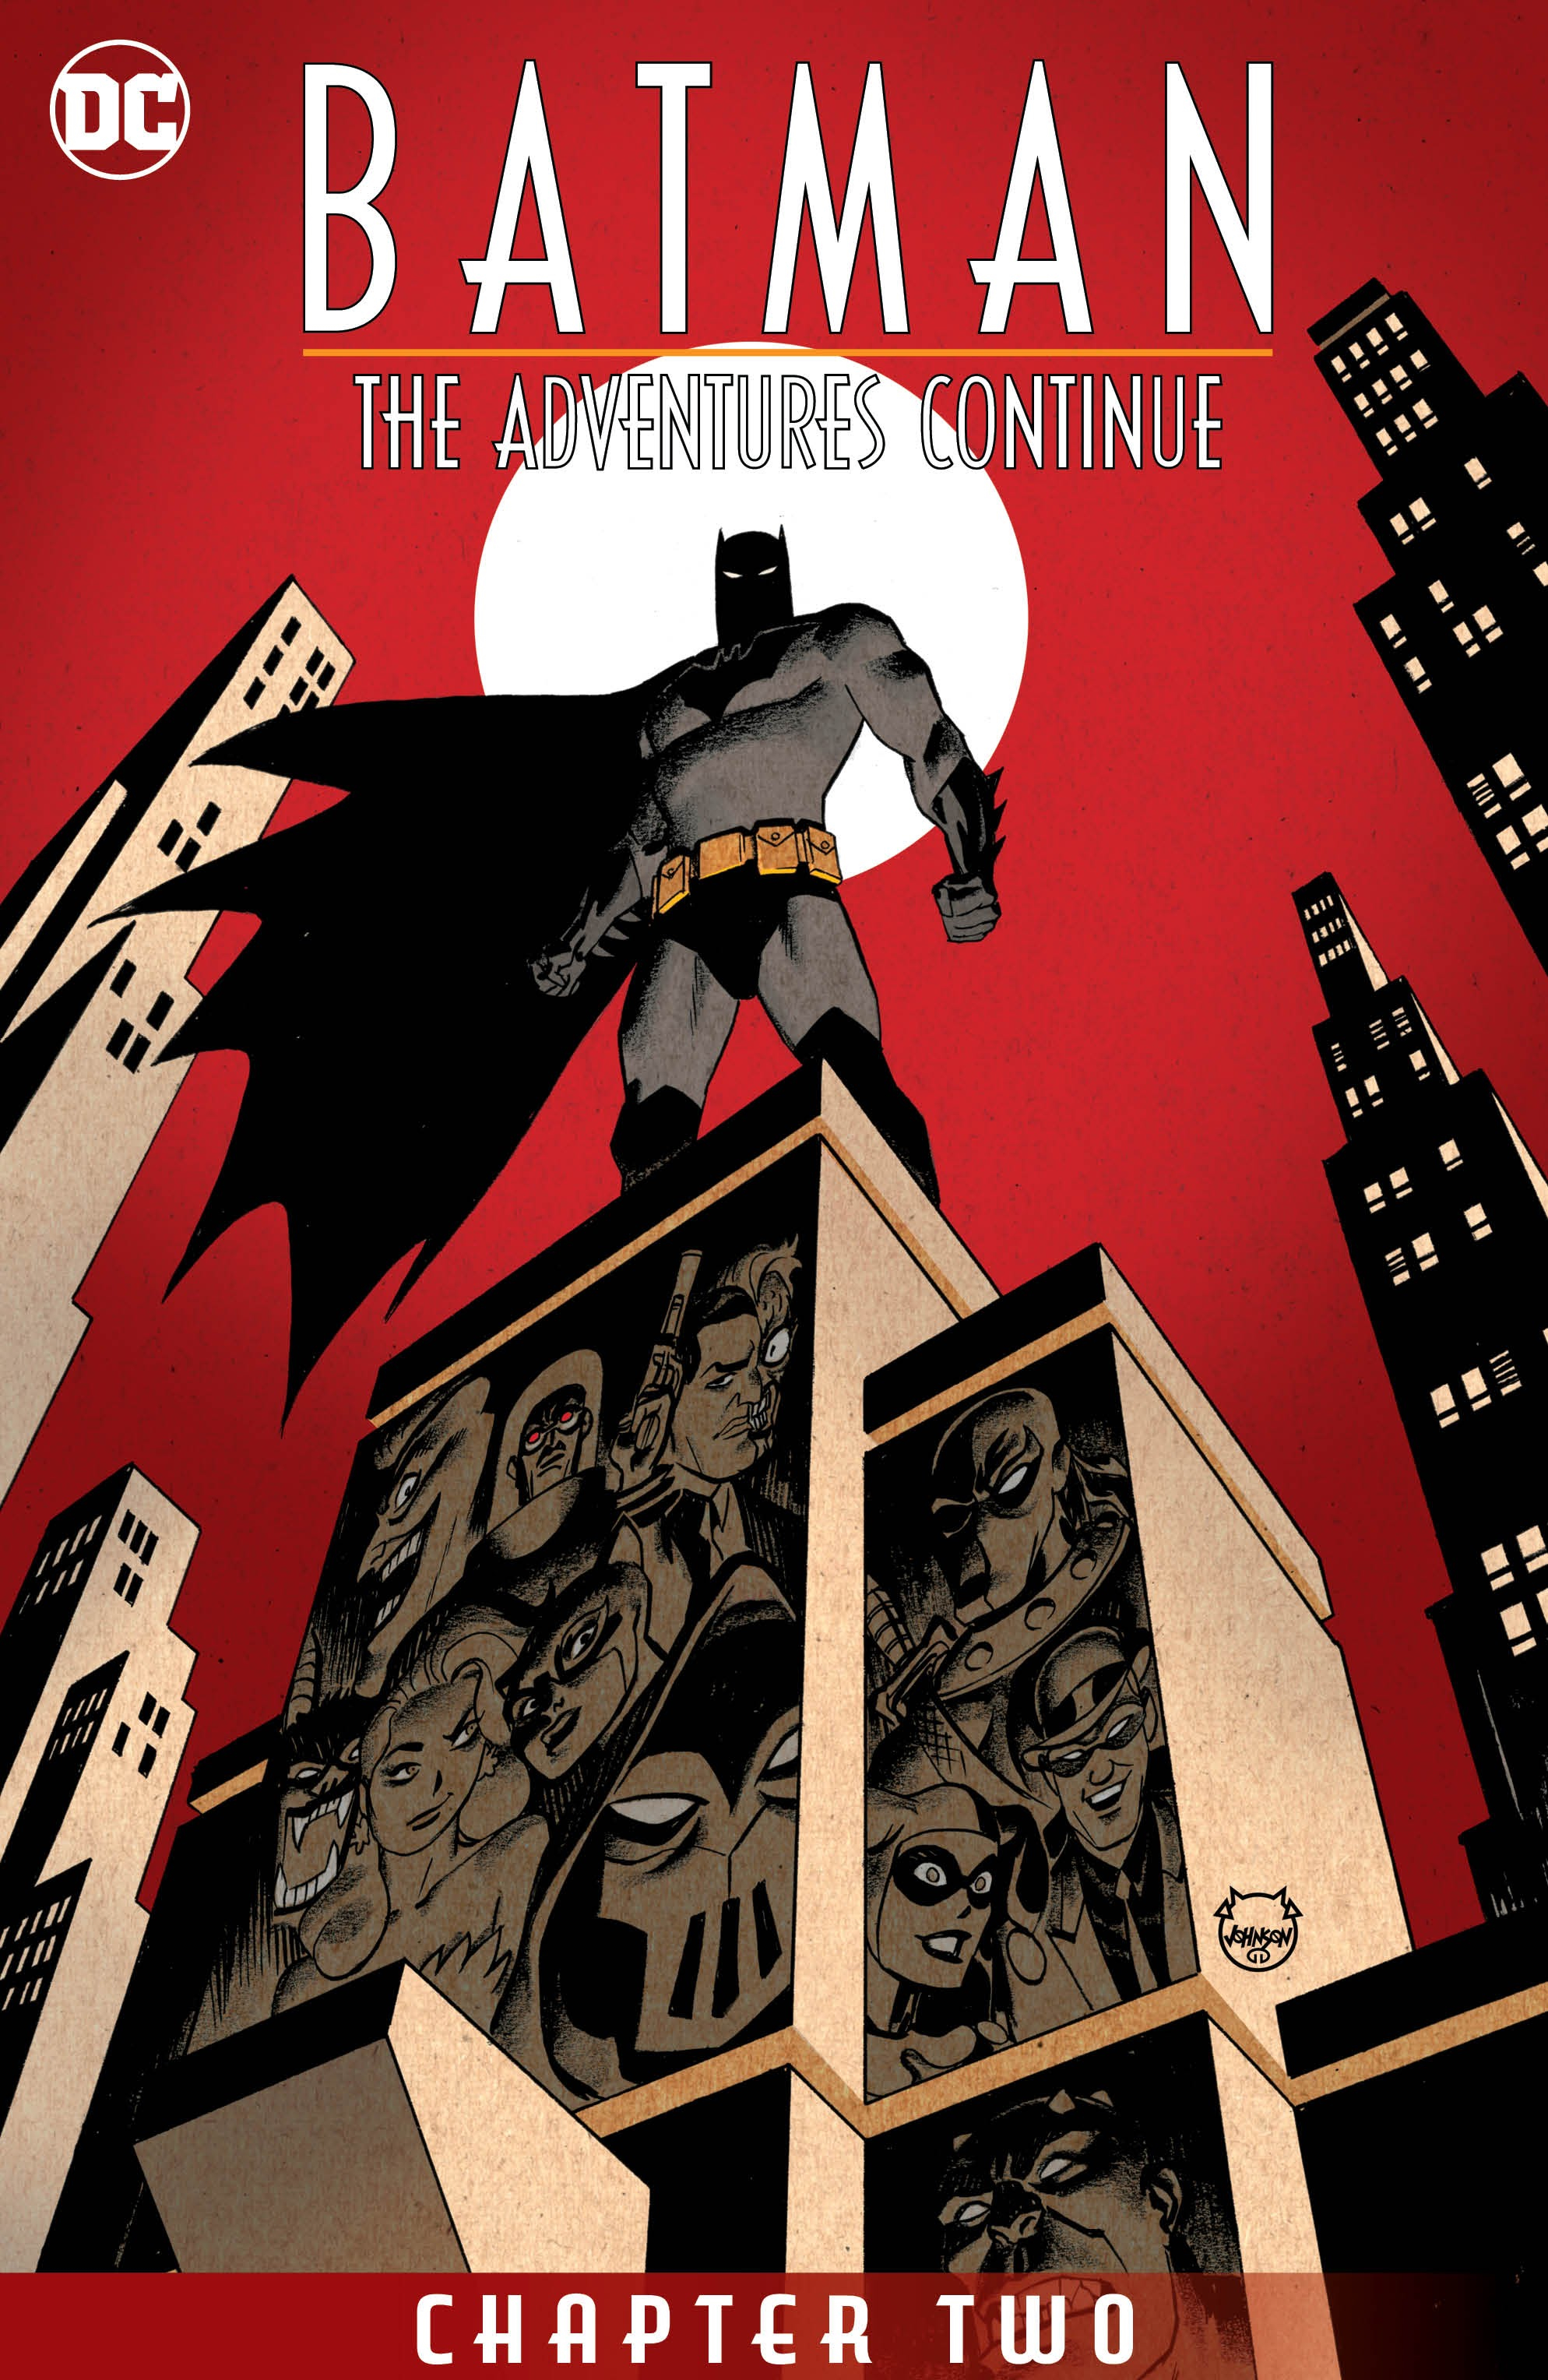 Batman: The Adventures Continue Vol 1 2 (Digital)